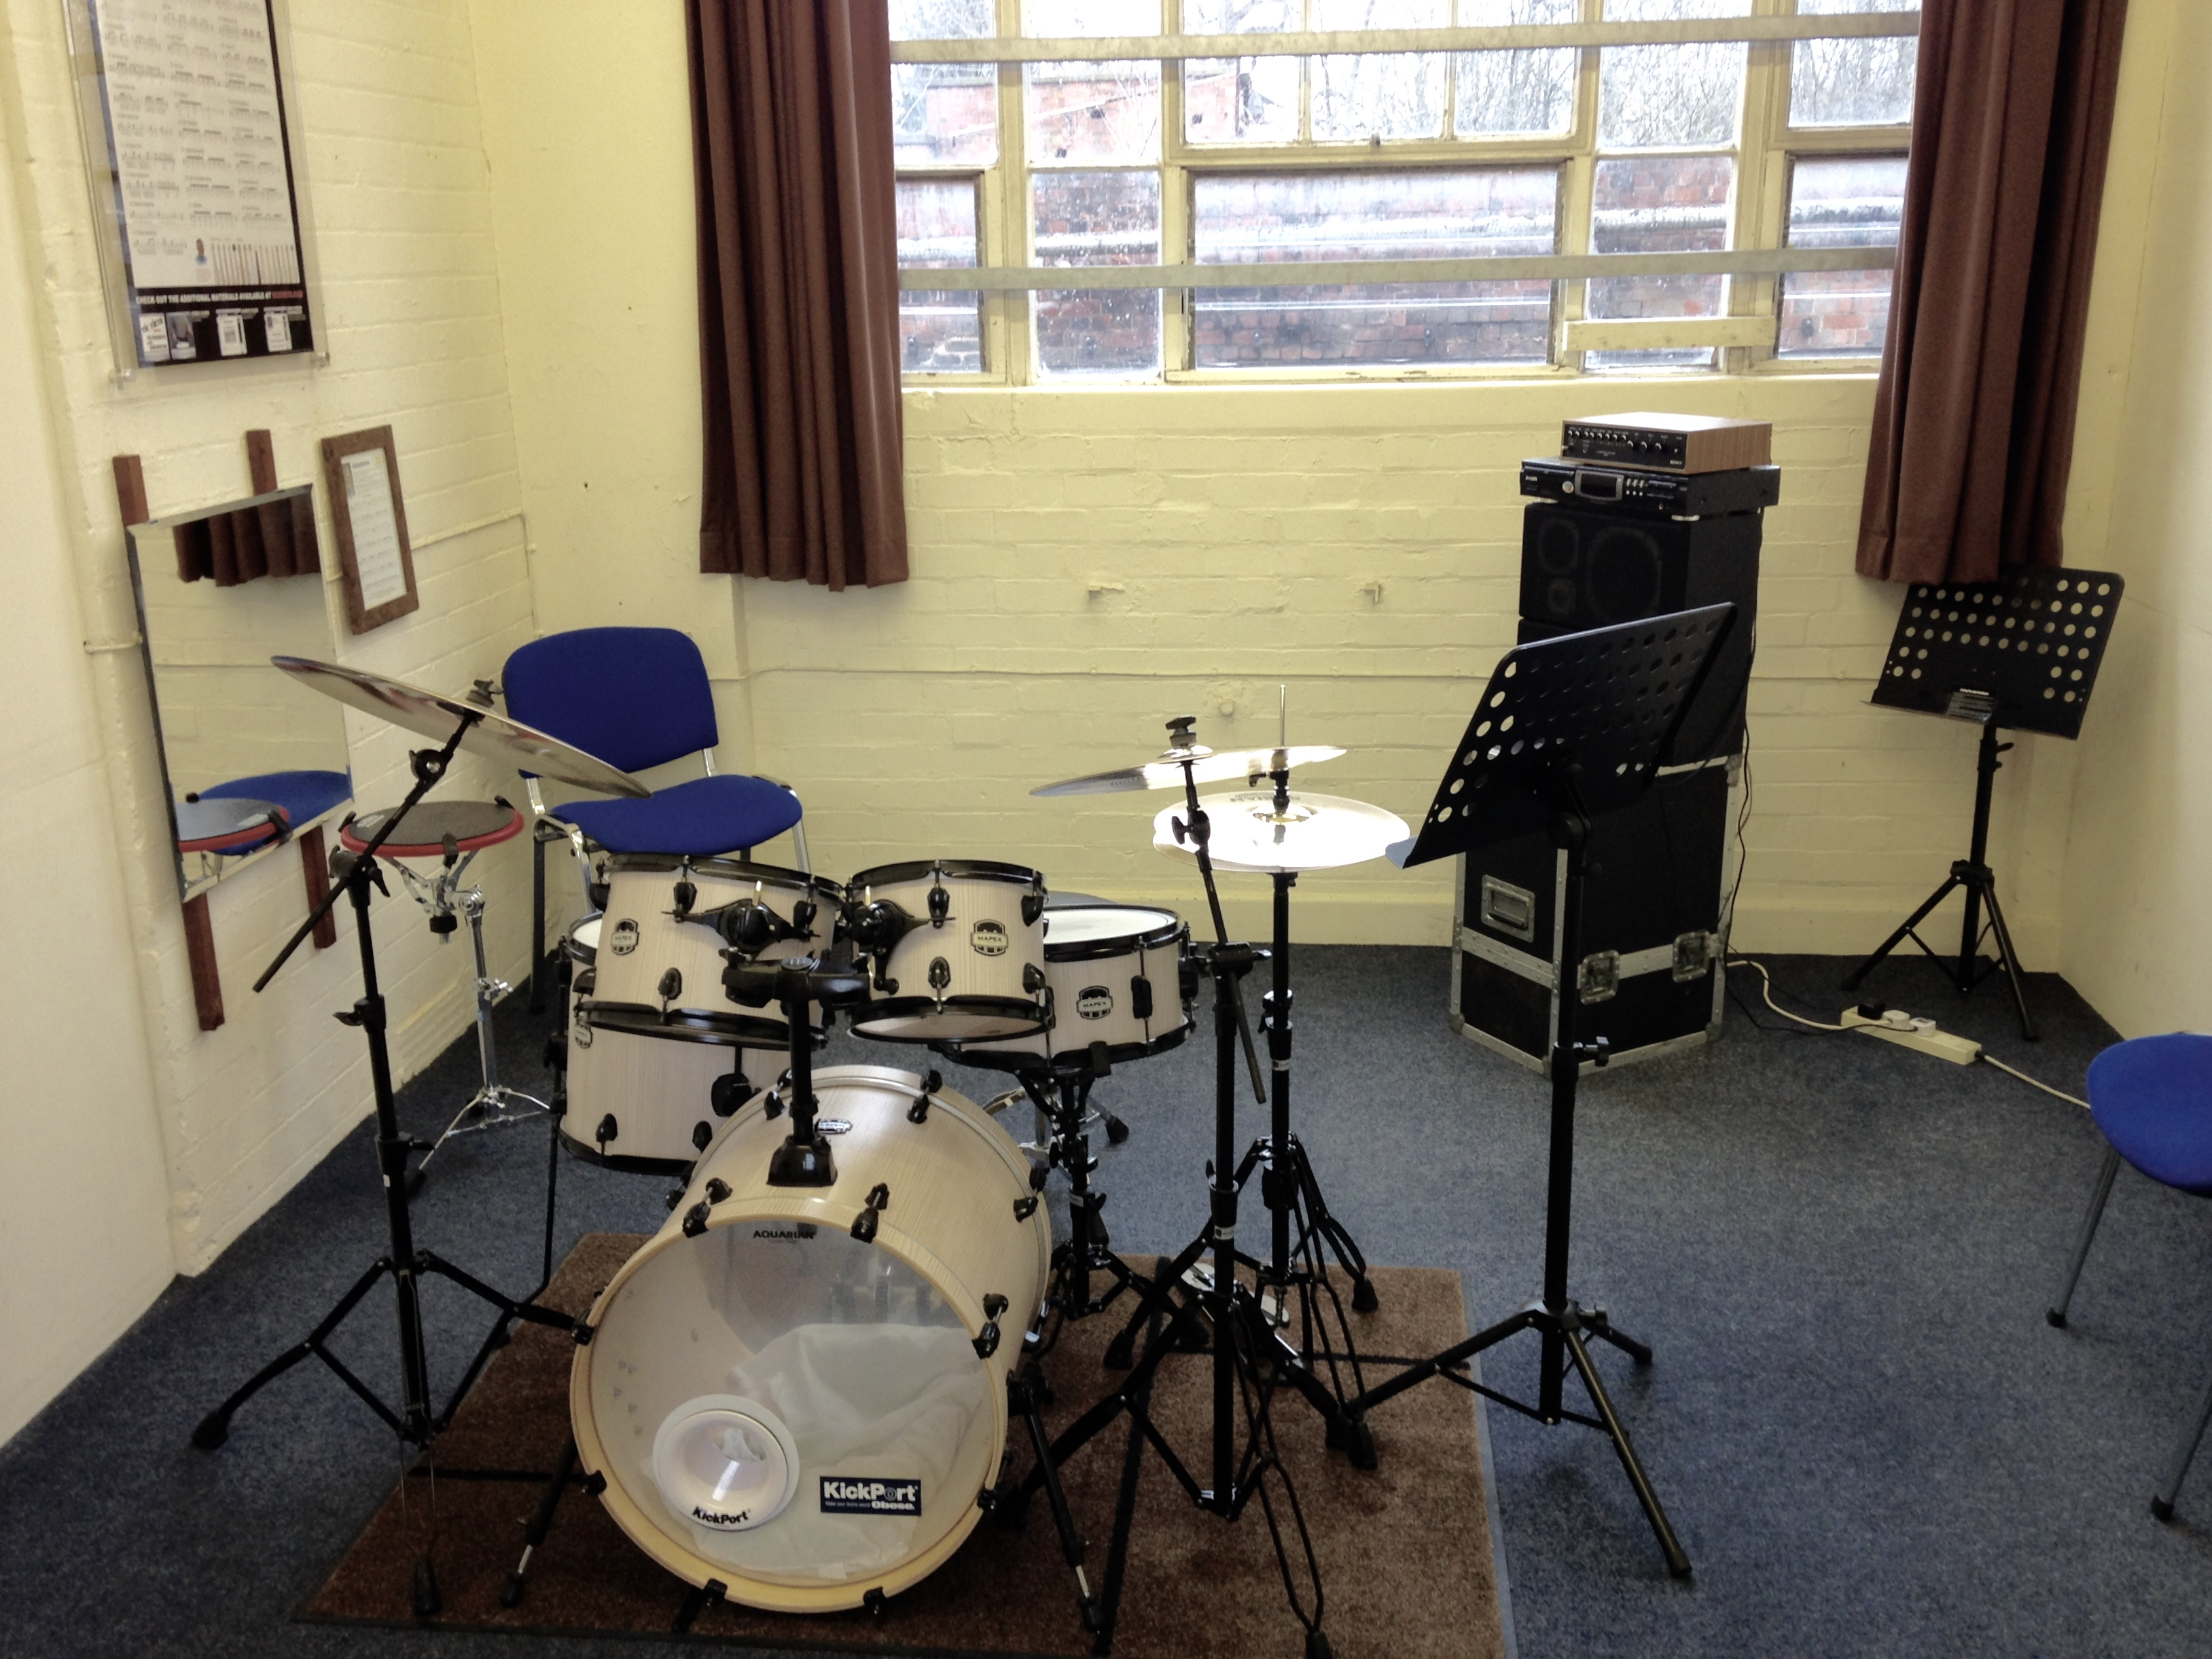 Dye House Drum Works: drum lessons and drum shop in Leicester!